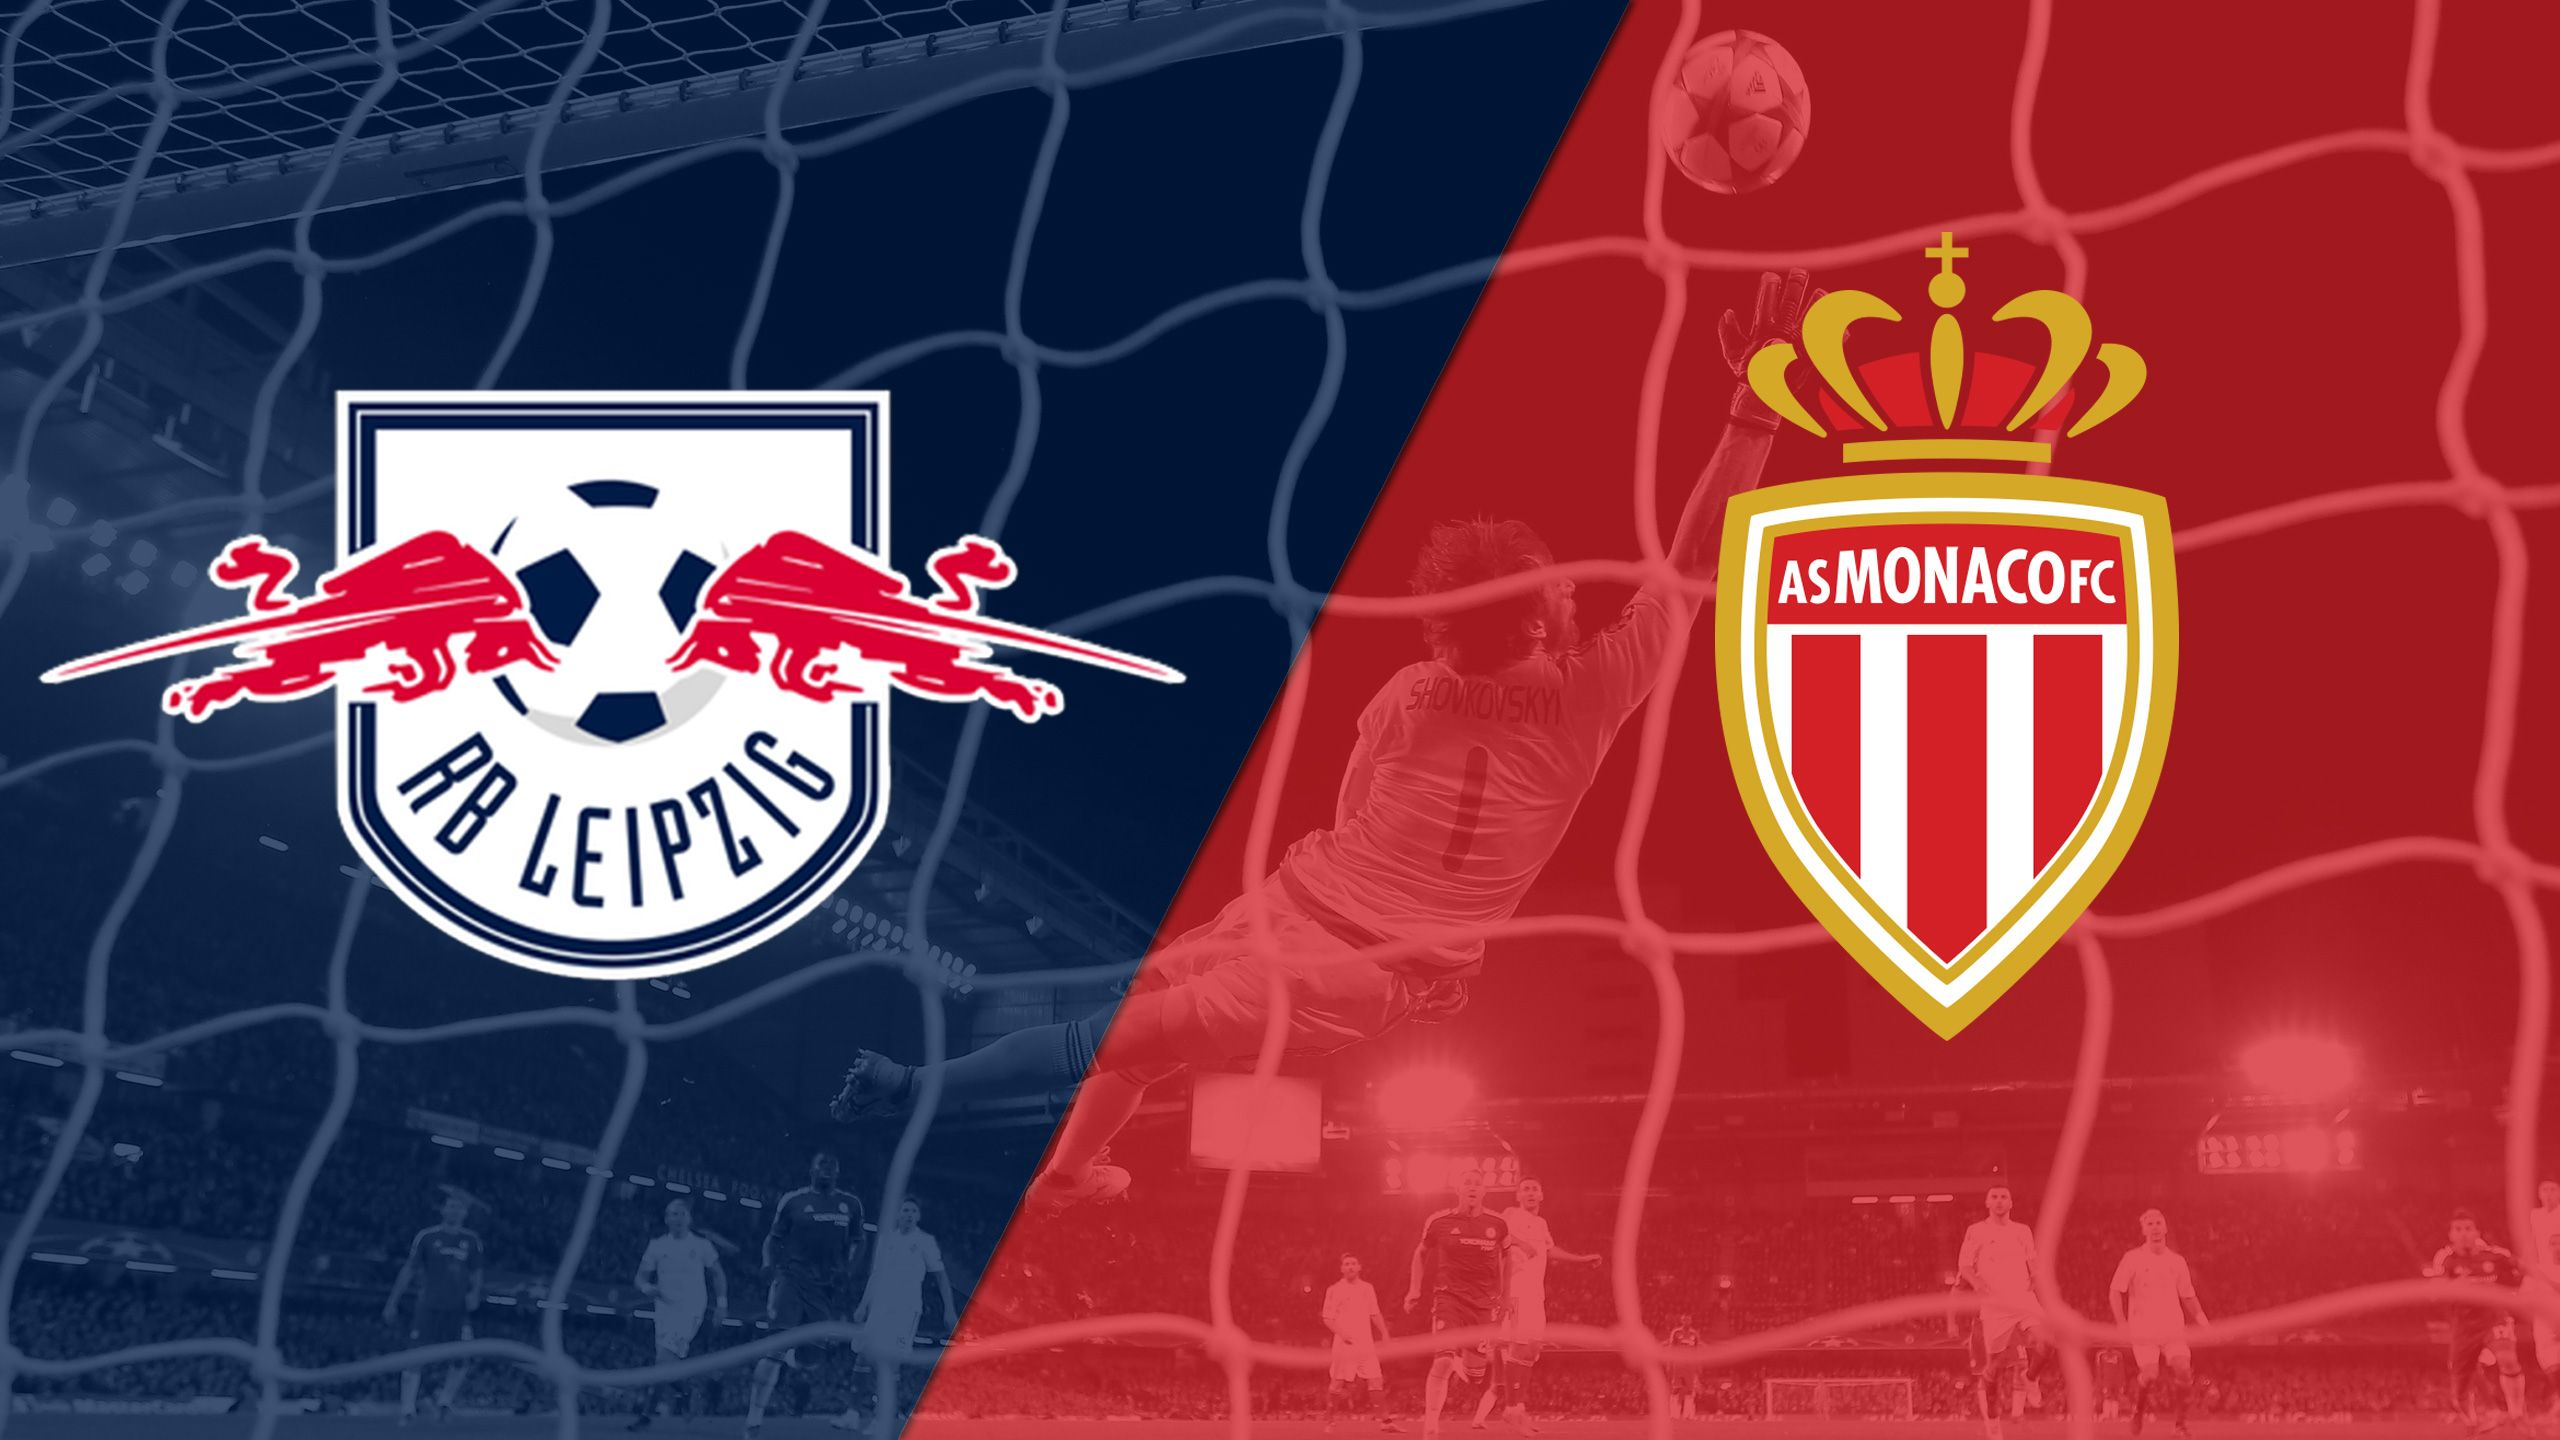 In Spanish - RB Leipzig vs. AS Monaco FC (Group Stage) (UEFA Champions League) (re-air)